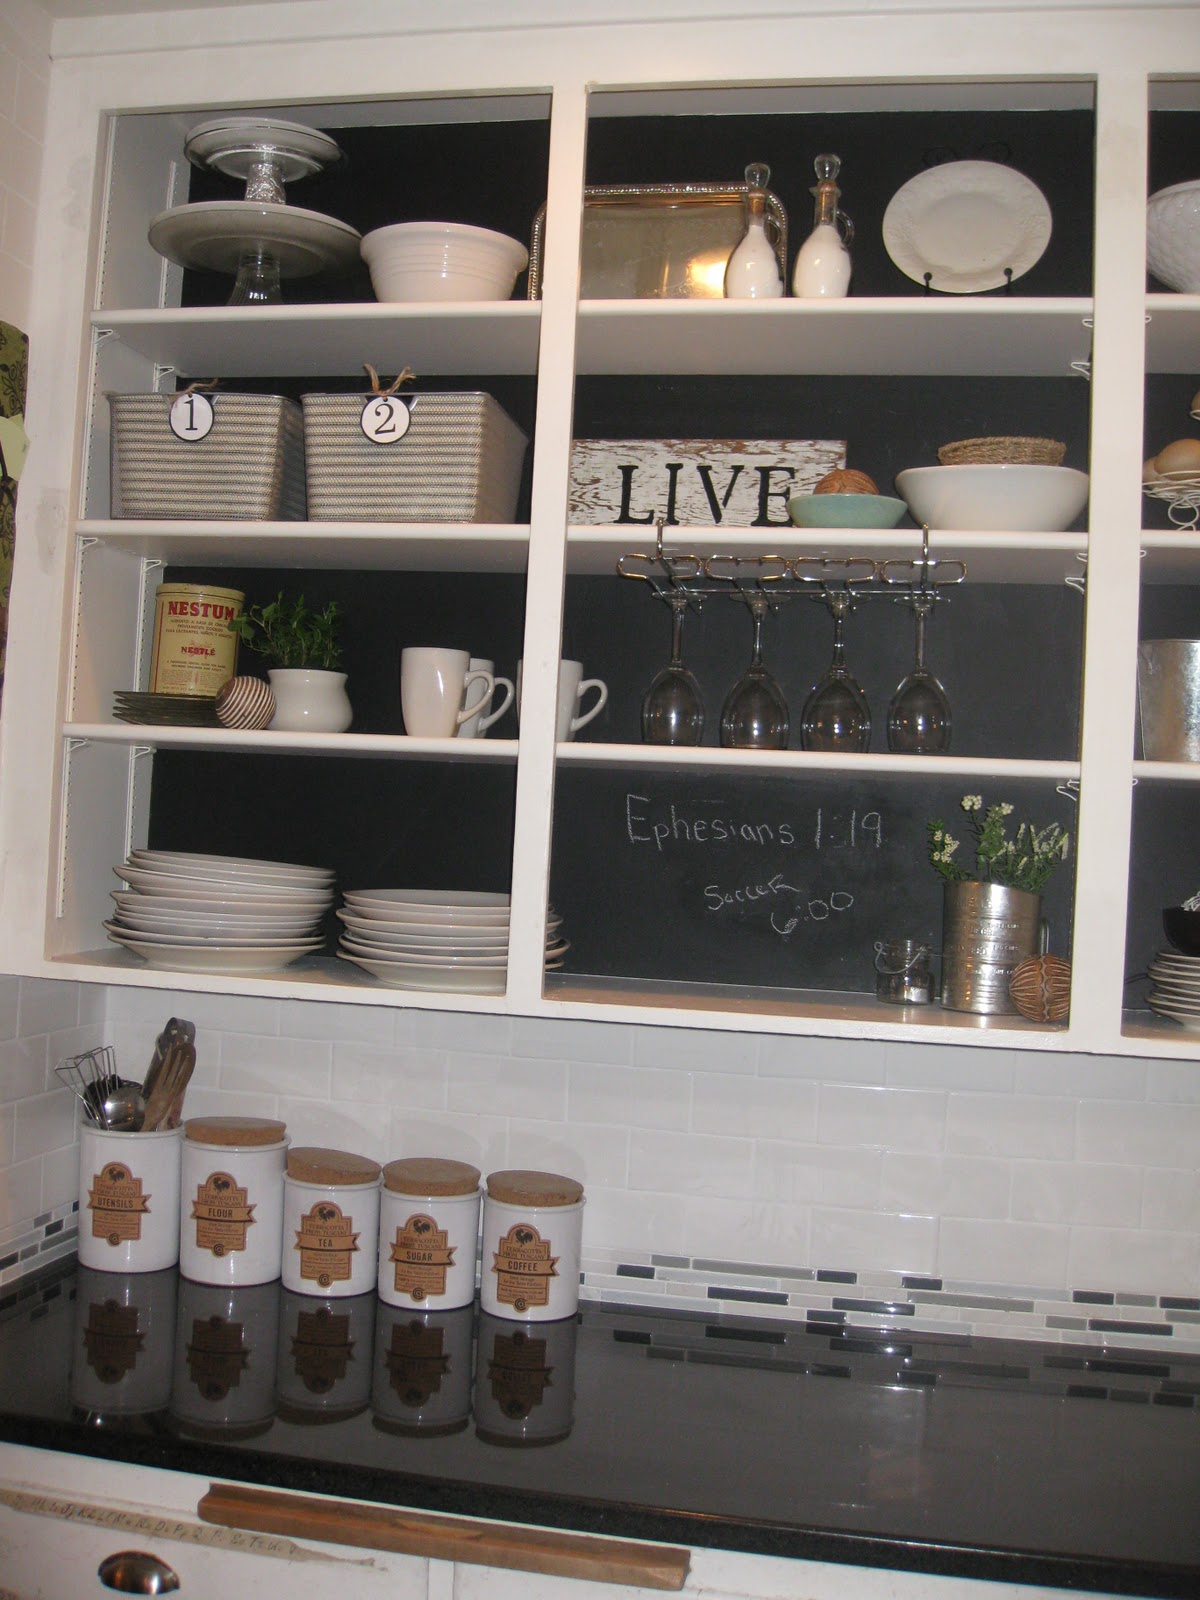 Diy chalkboard cabinets creatively living outside the box - Open shelving living room ...